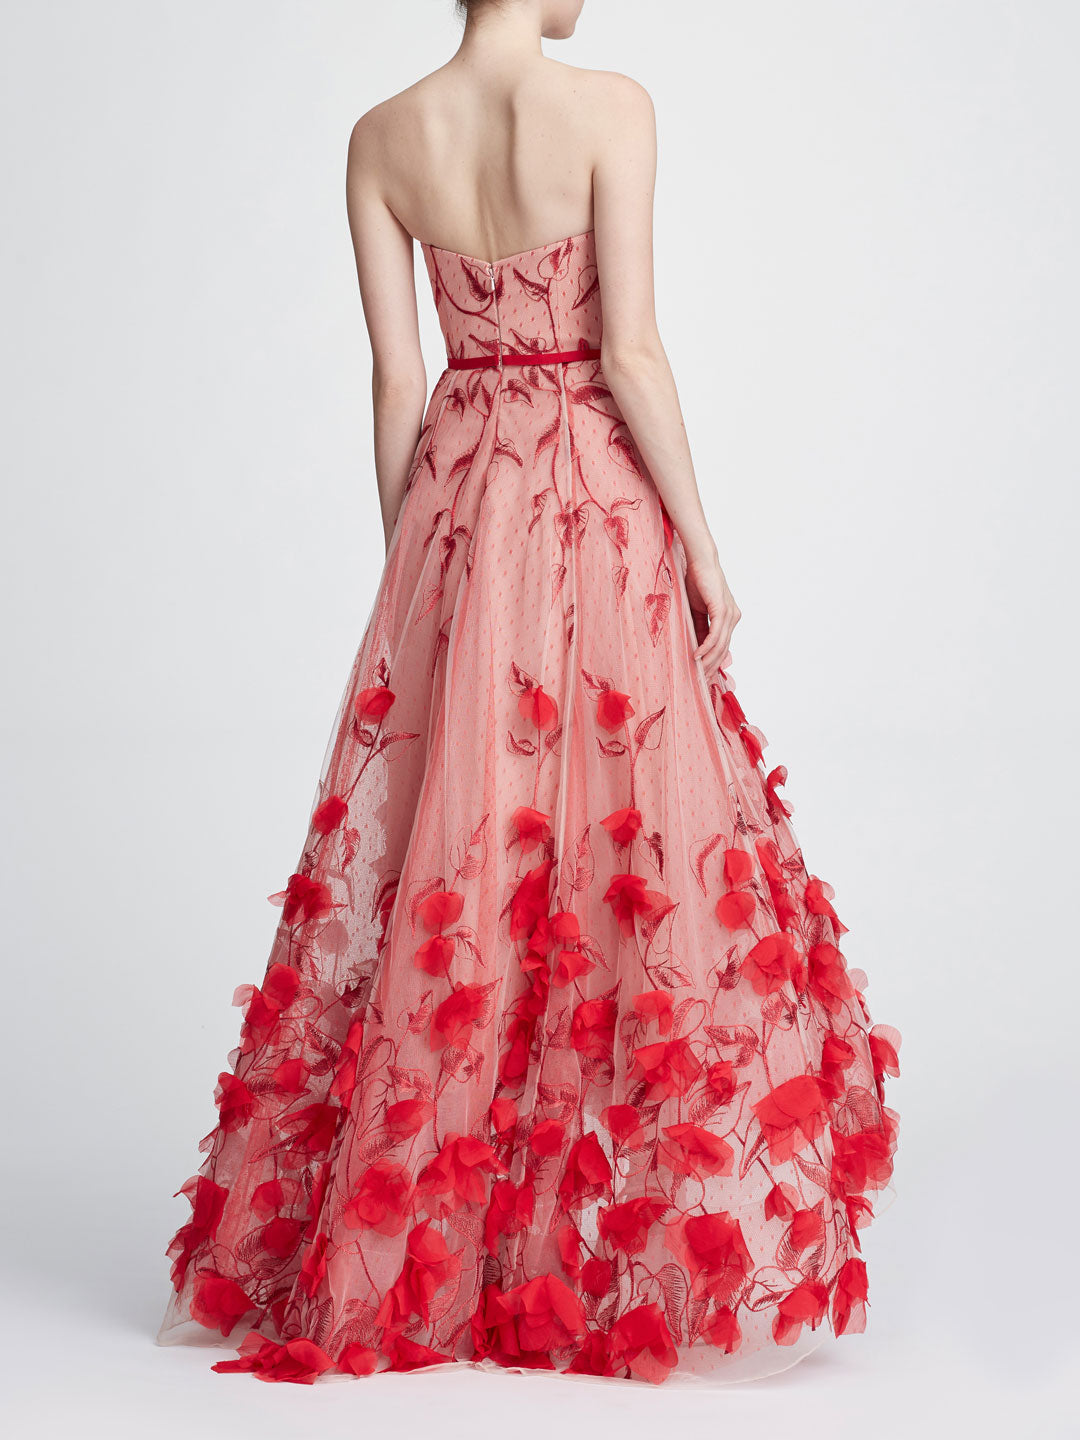 Strapless 3D floral gown